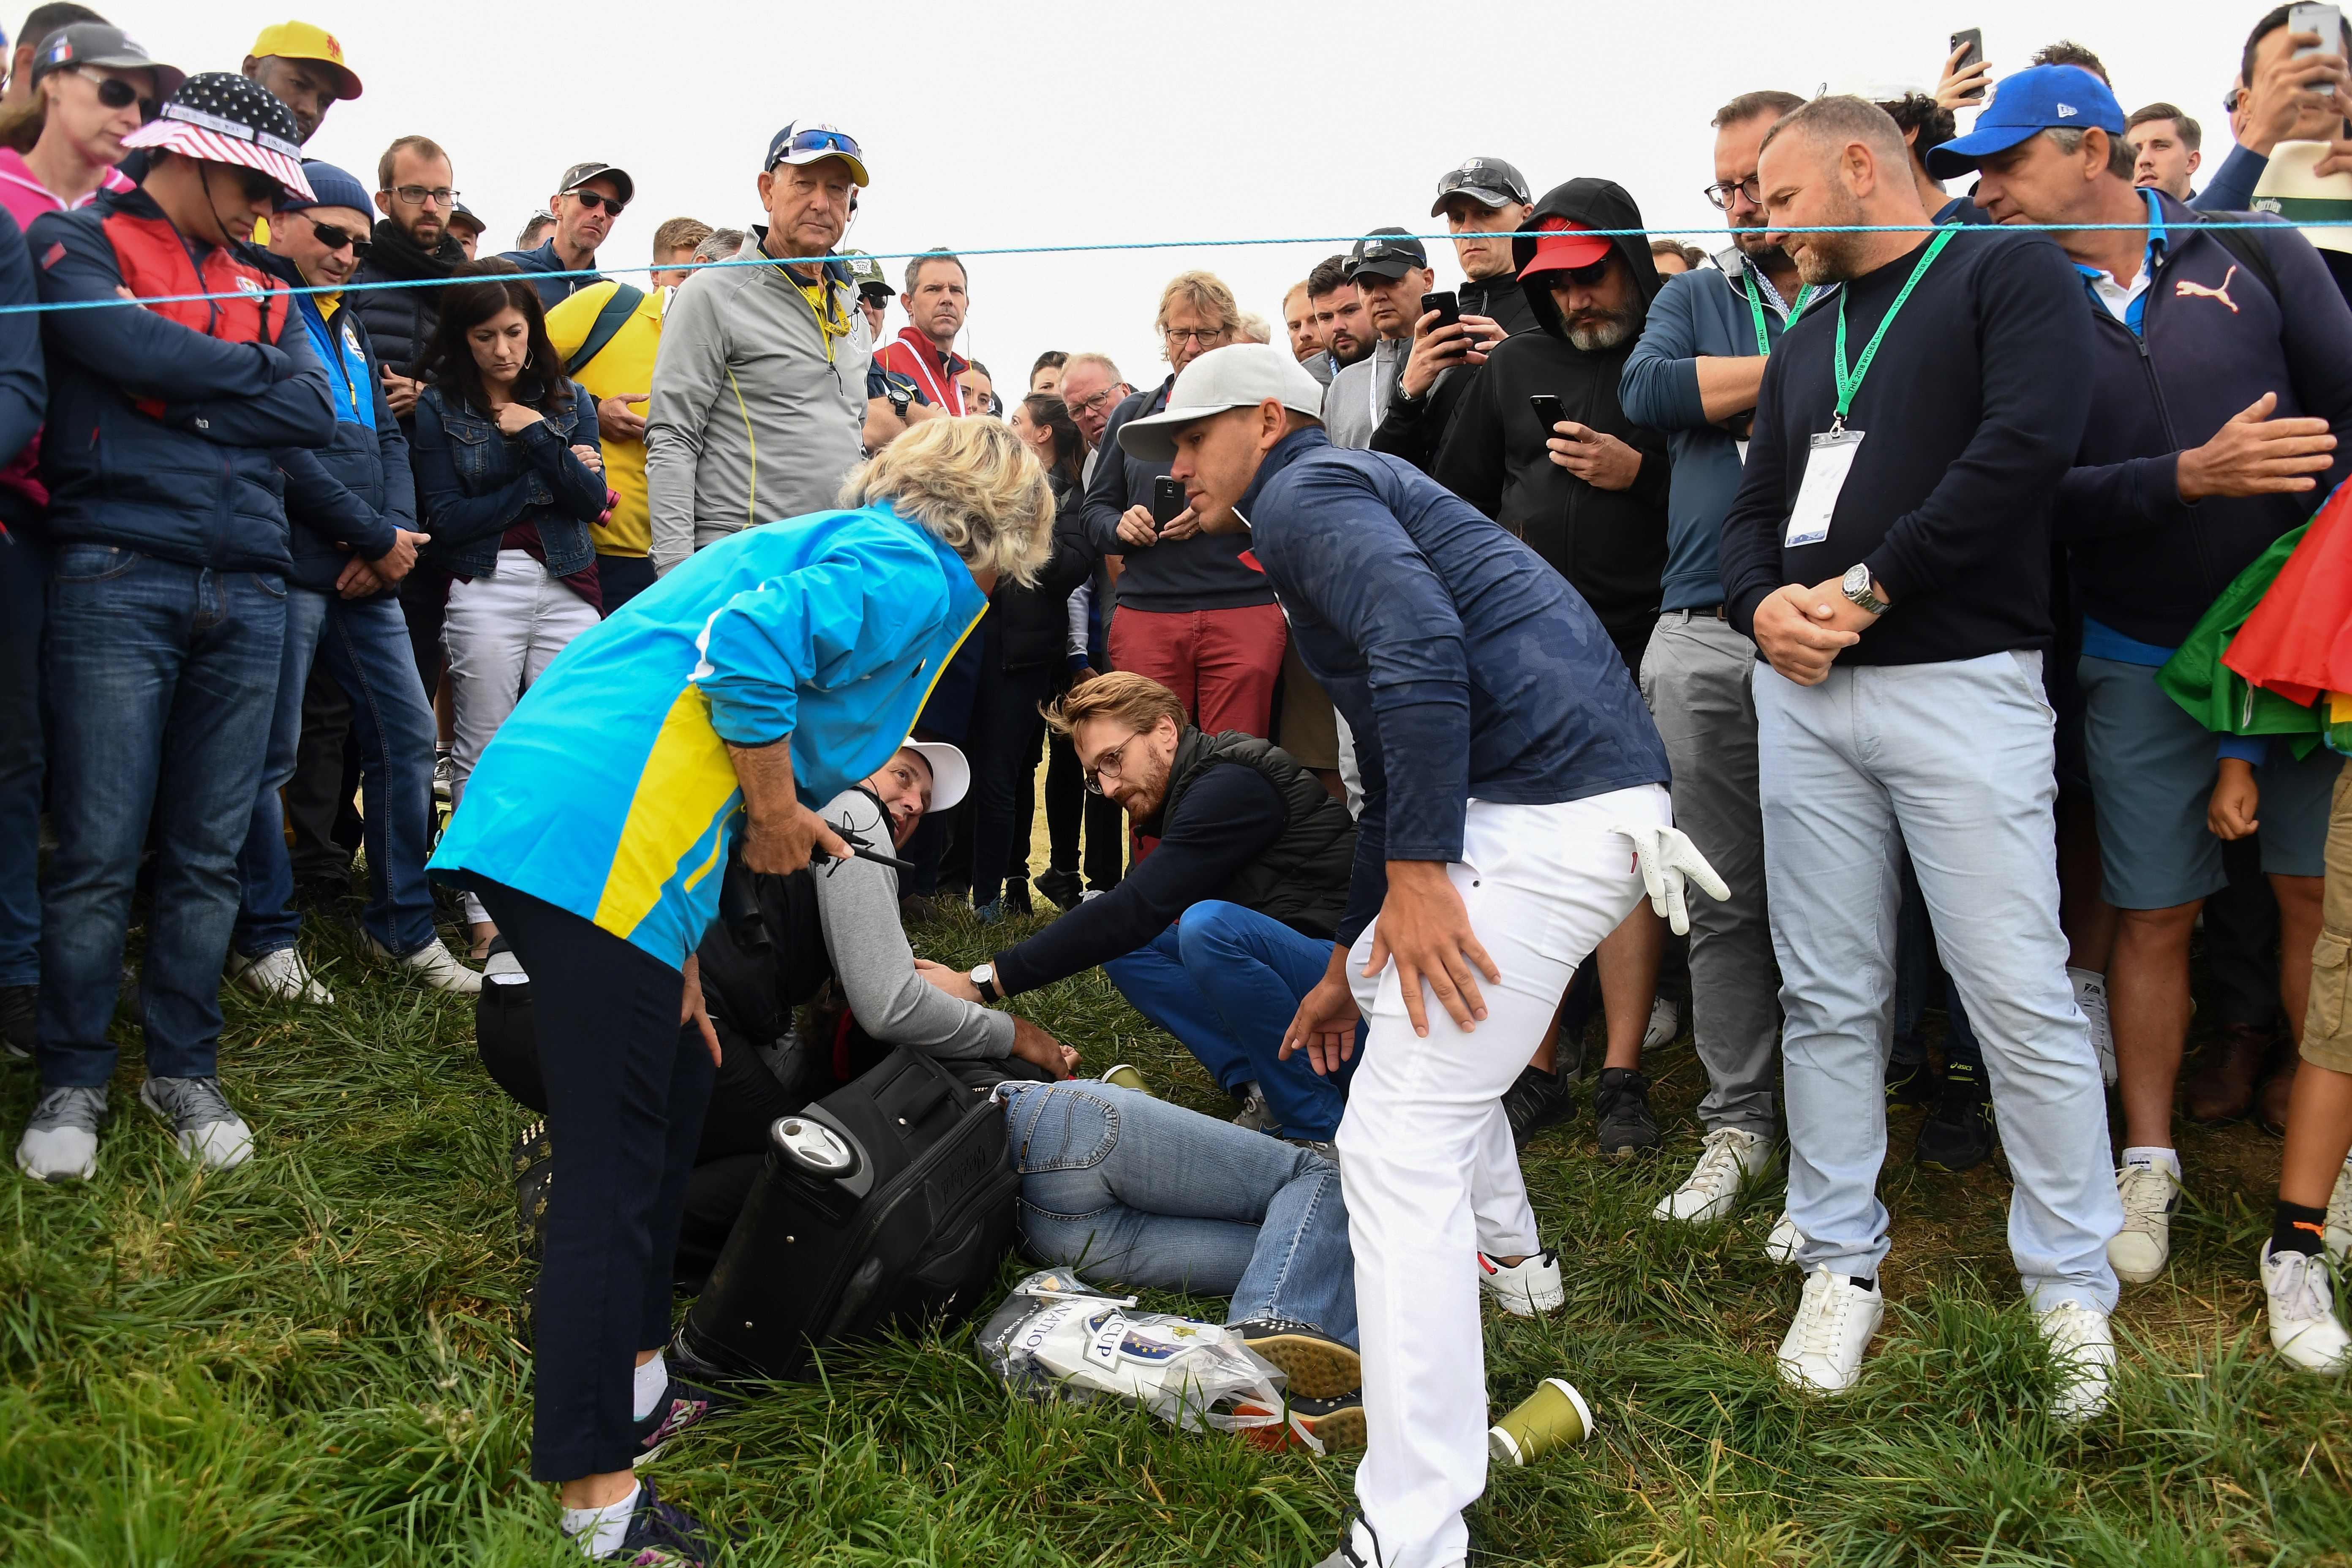 Remande is planning to sue Ryder Cup organisers after her eyeball exploded on the opening day of the tournament